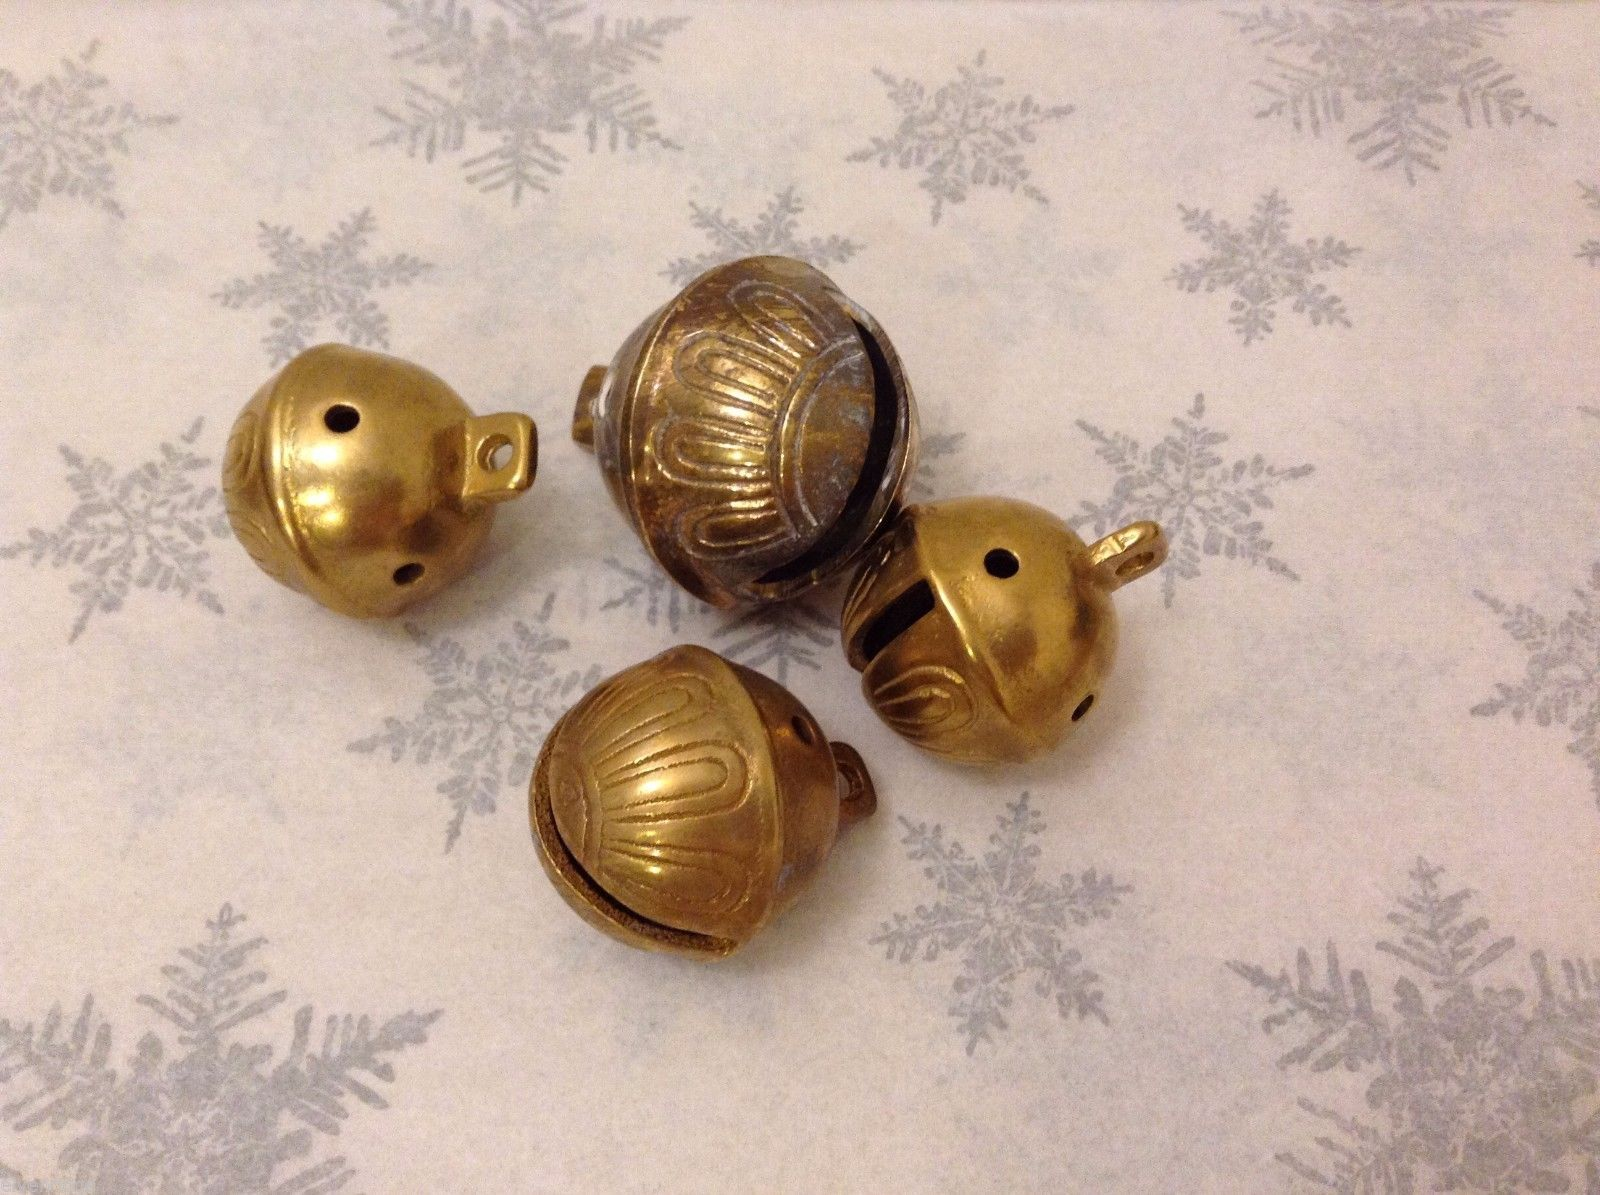 Polar Gold Brass Crappy Santa Sleigh bells GREAT for Xmas Morning surprise